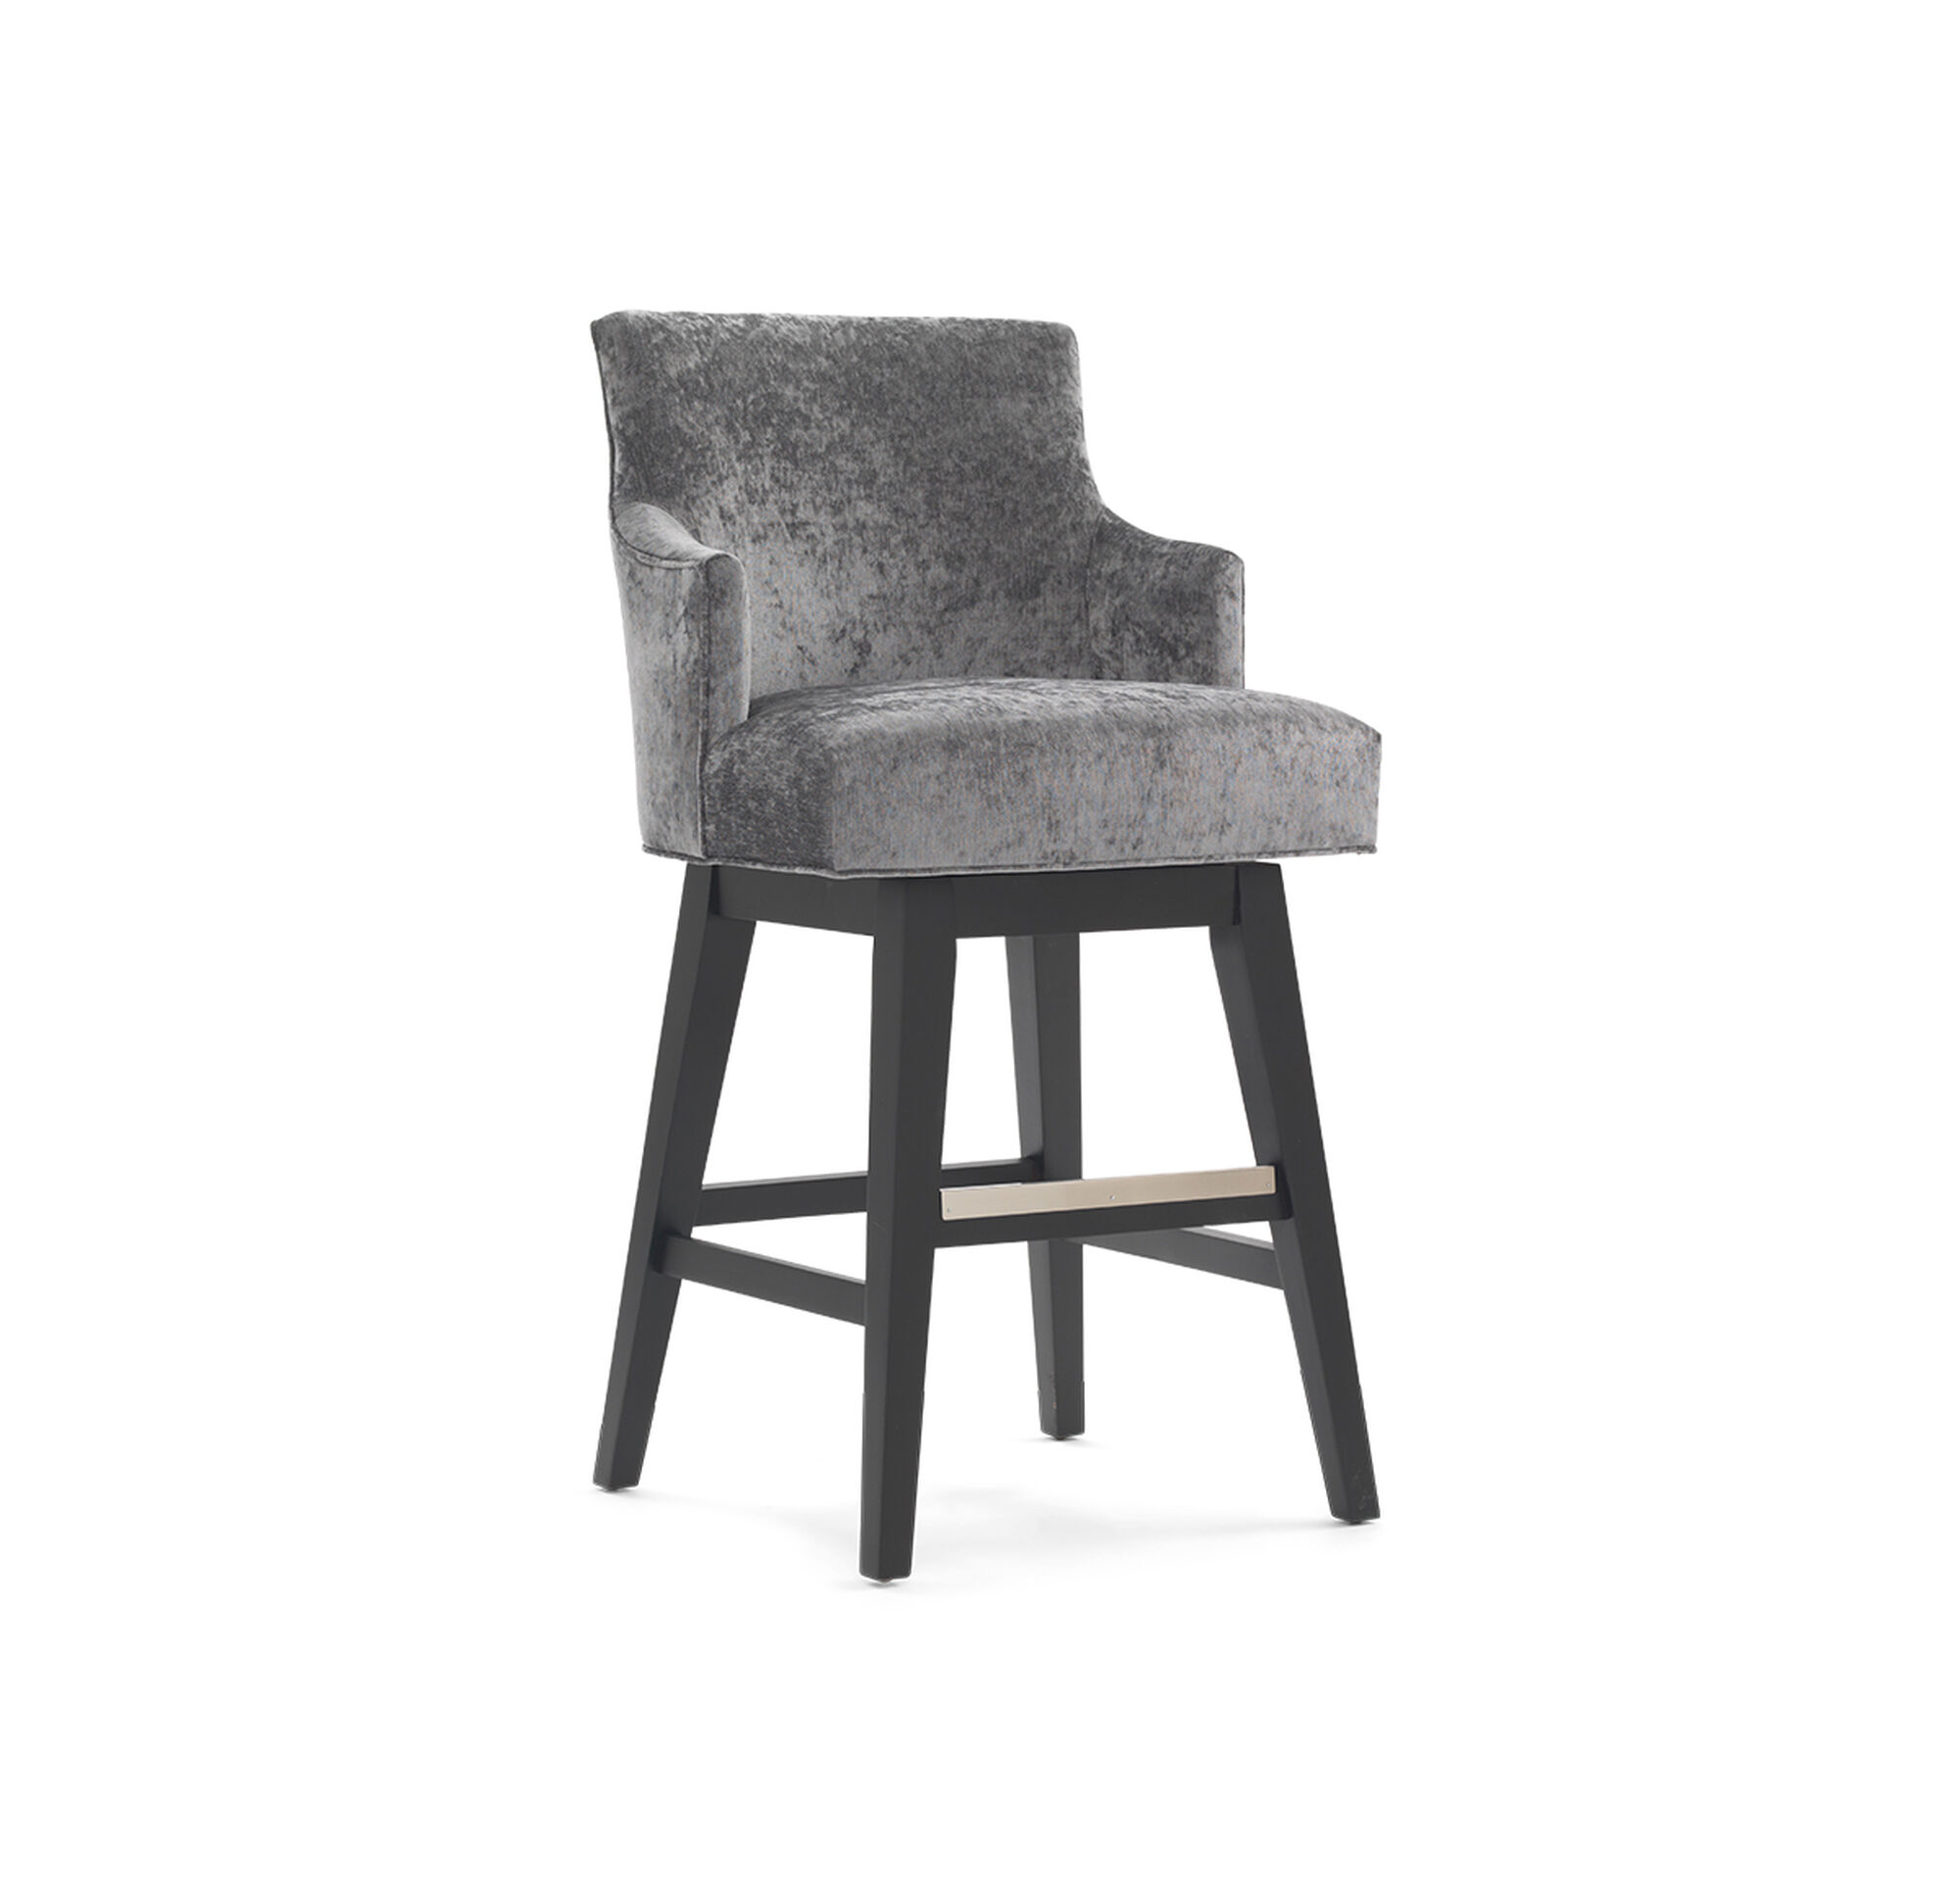 ADA RETURN SWIVEL BAR STOOL - WITH ARMS